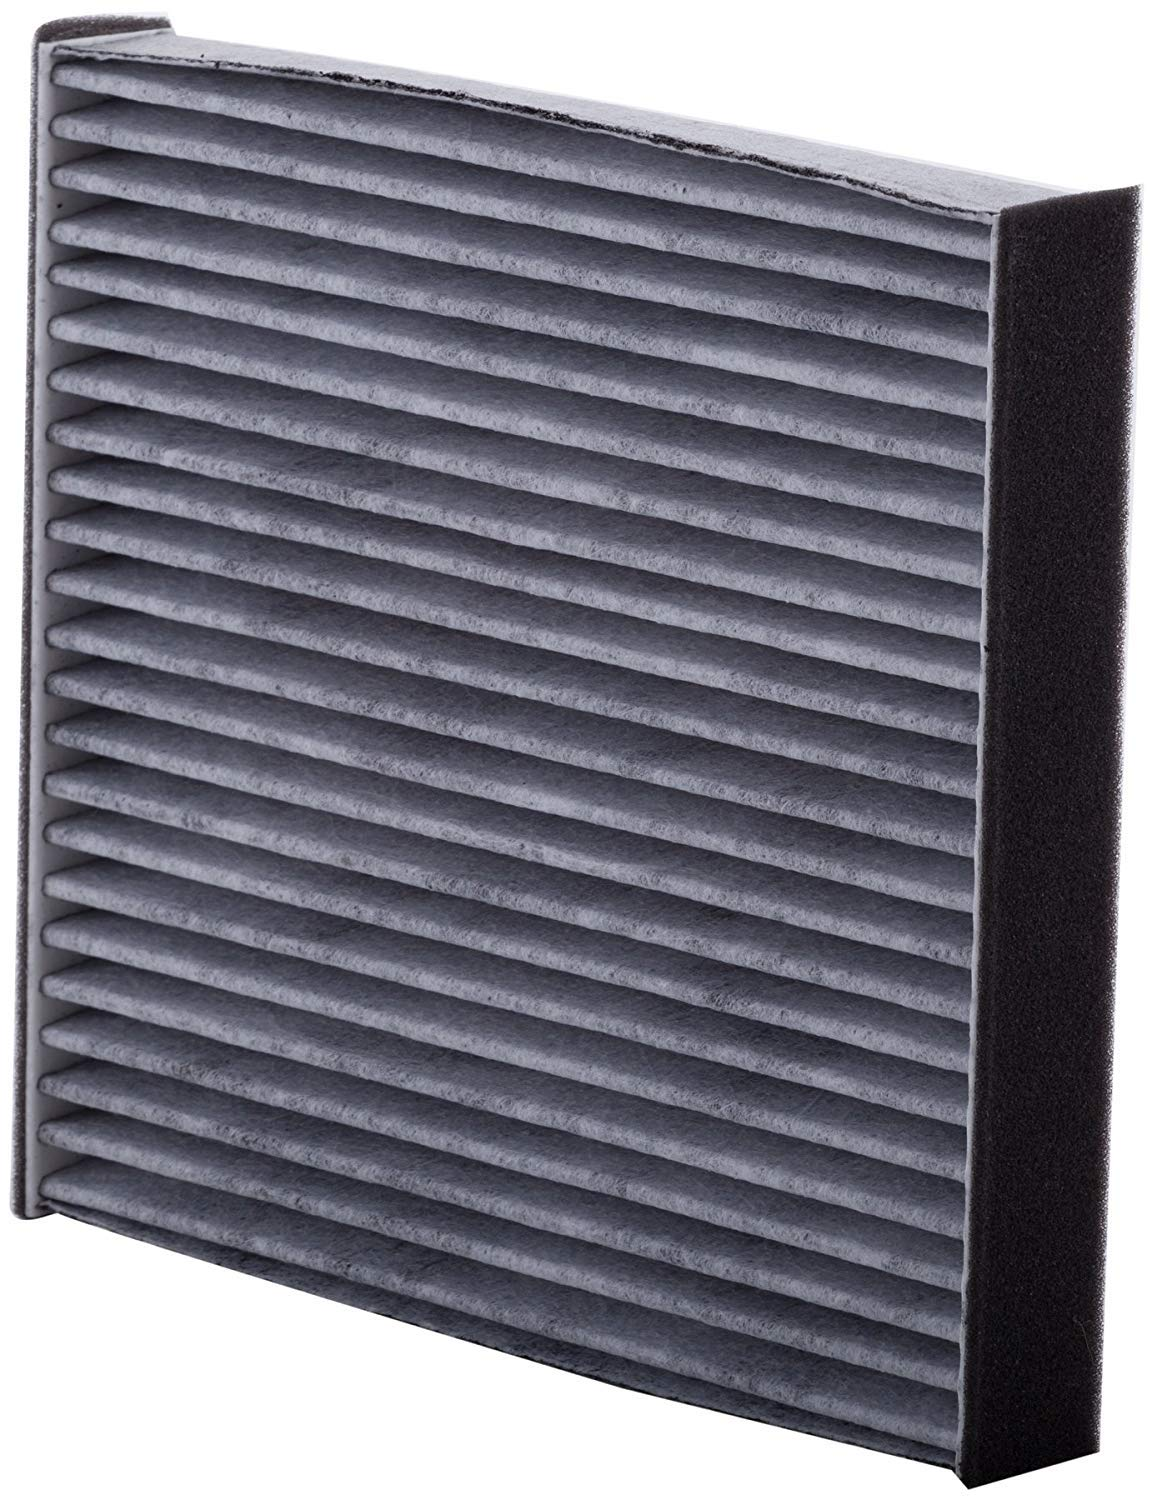 PG Cabin Air Filter PC5667C |Fits 2005-2019 various models of Toyota, Lexus, Jaguar, Subaru, Land Rover (Charcaol Media Pack of 6) by Premium Guard (Image #3)